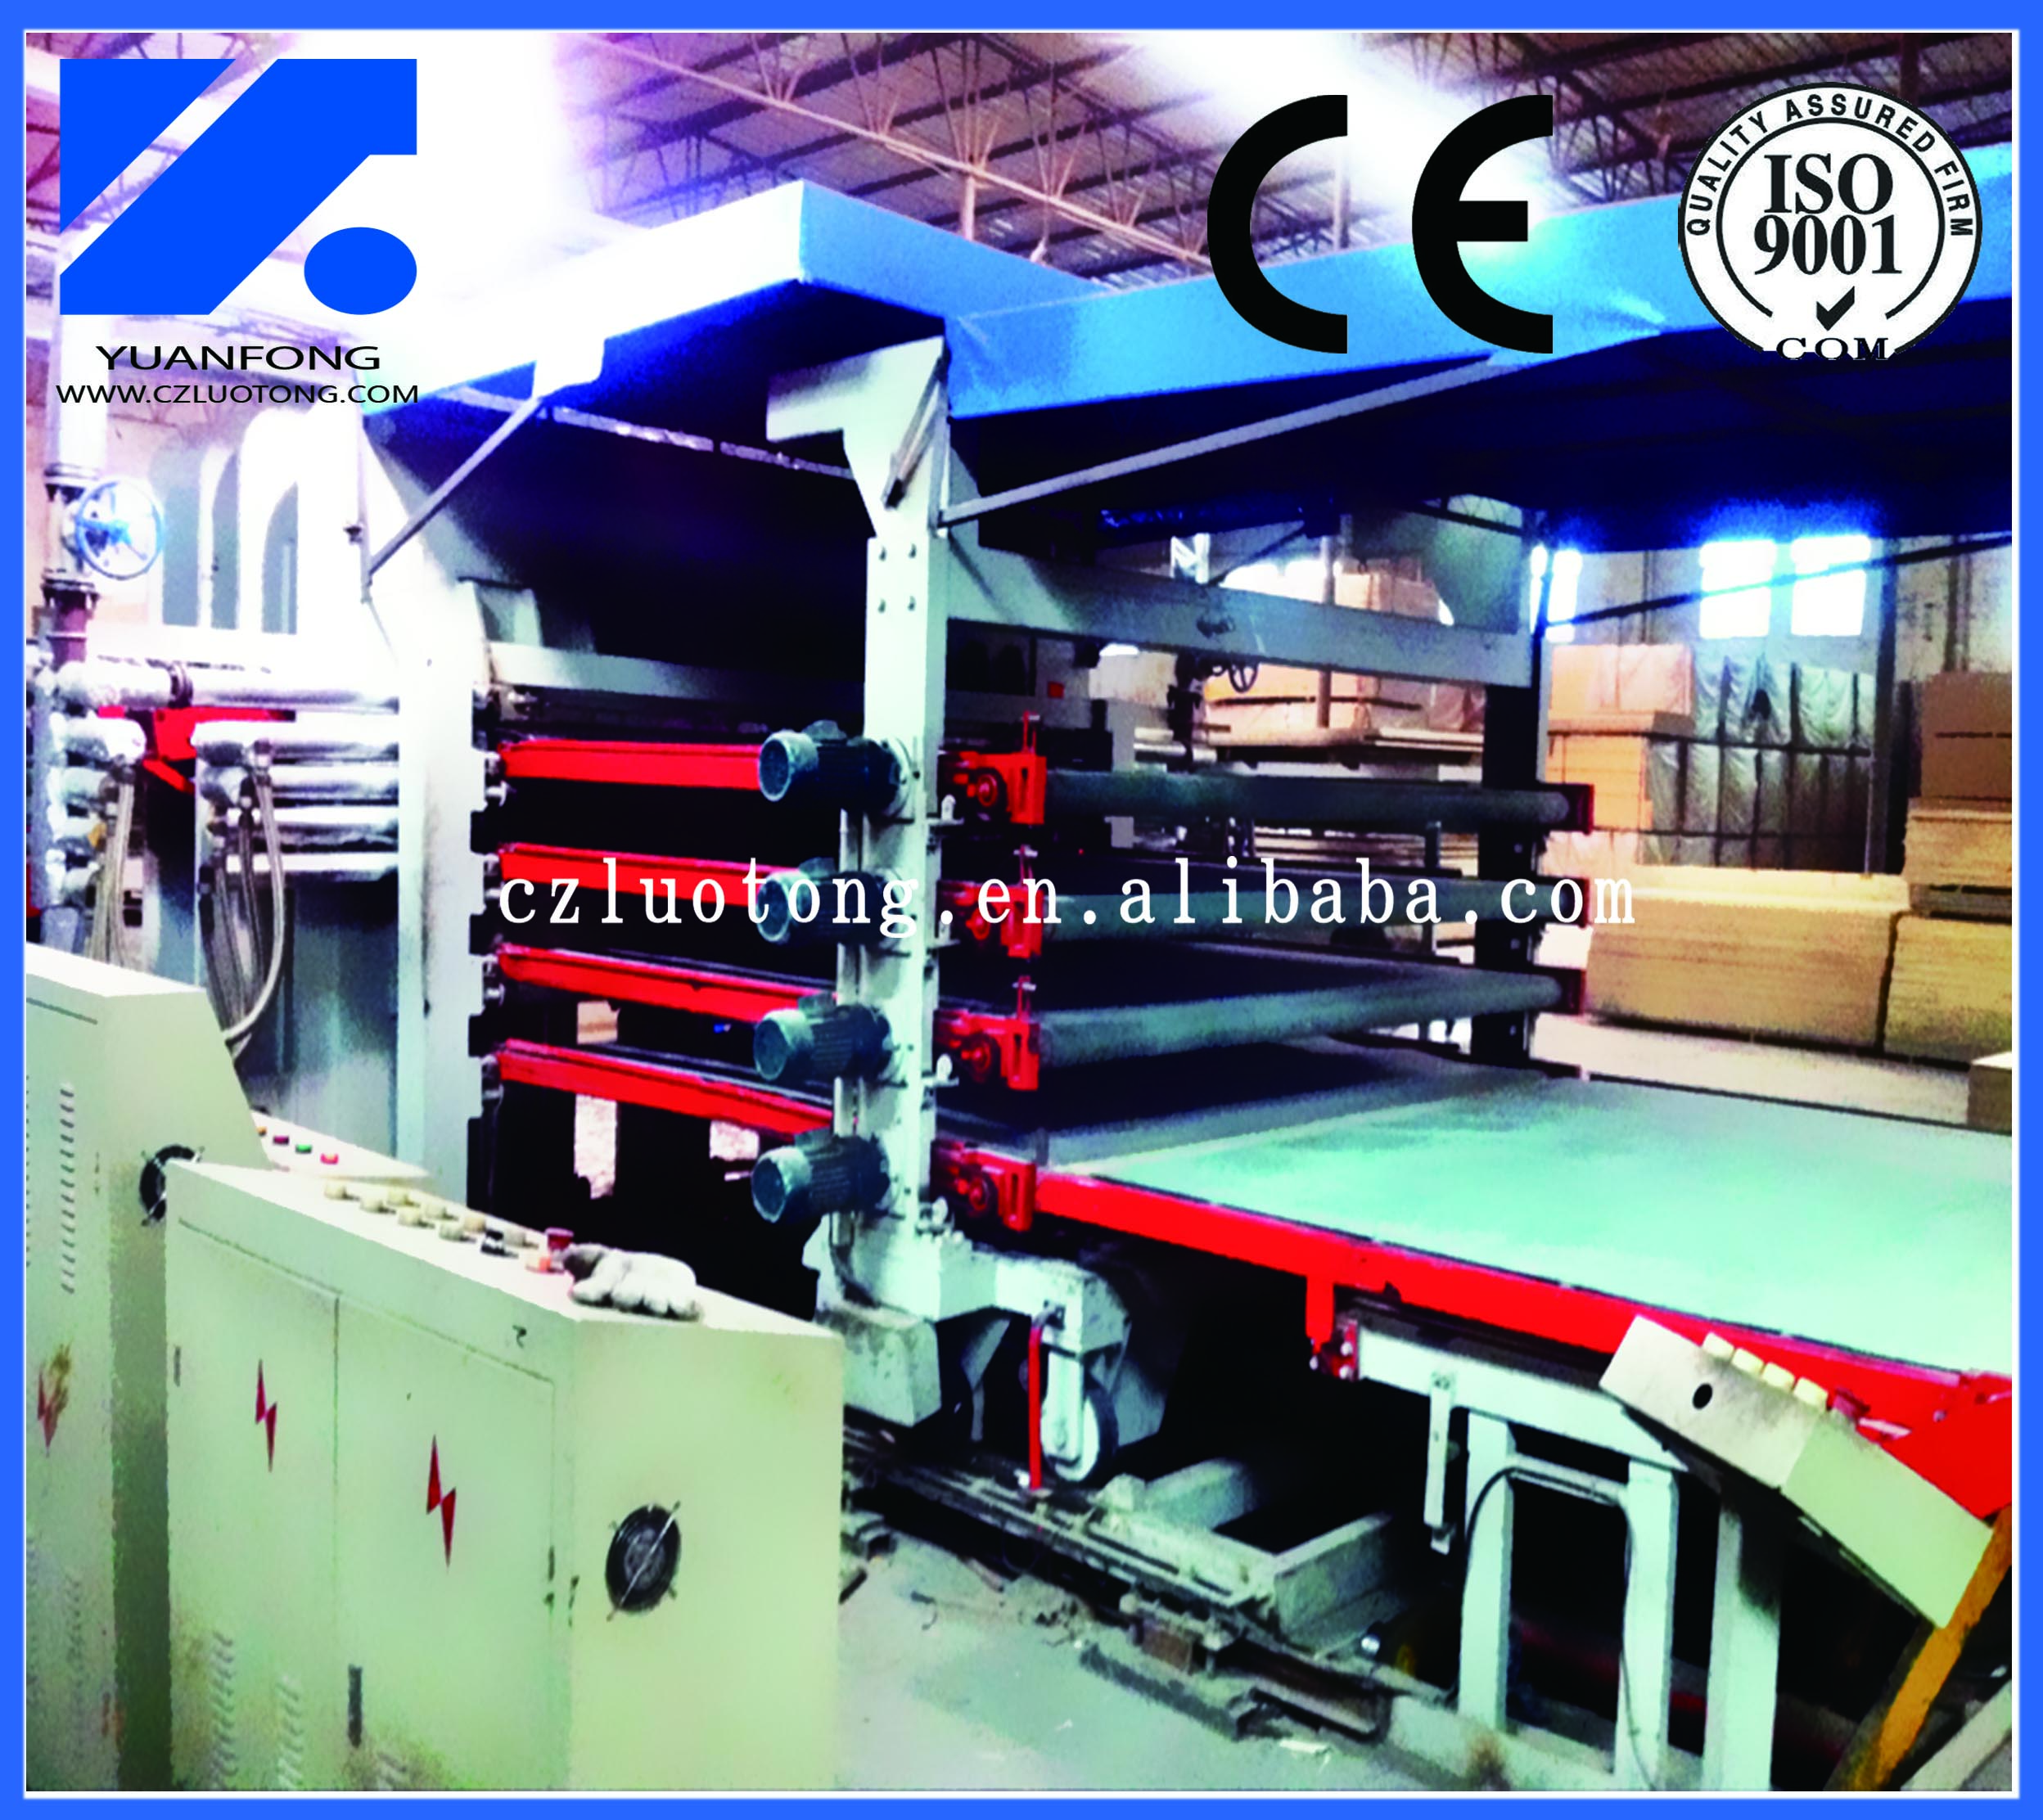 multilayer type thermal melamine short cycle press machine